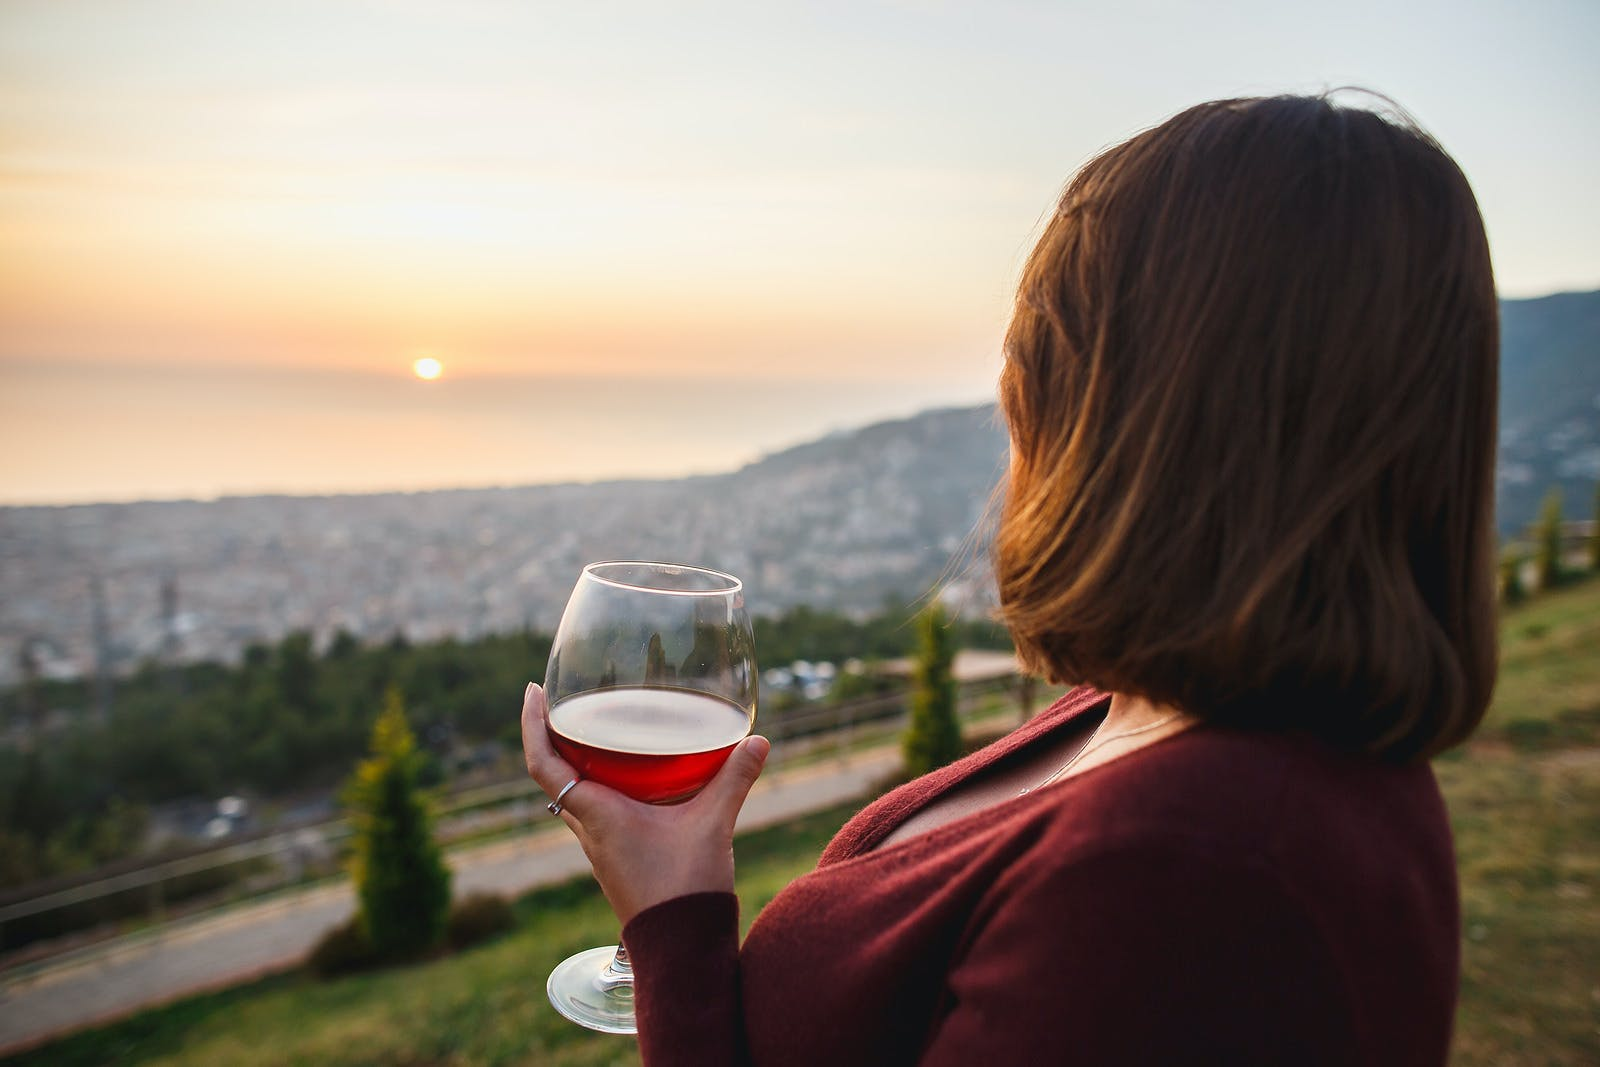 Woman drinking red wine on sunset mountains, close up of hand holding glass of wine. Elegant woman enjoying beautiful mountain and sea landscape on sunset